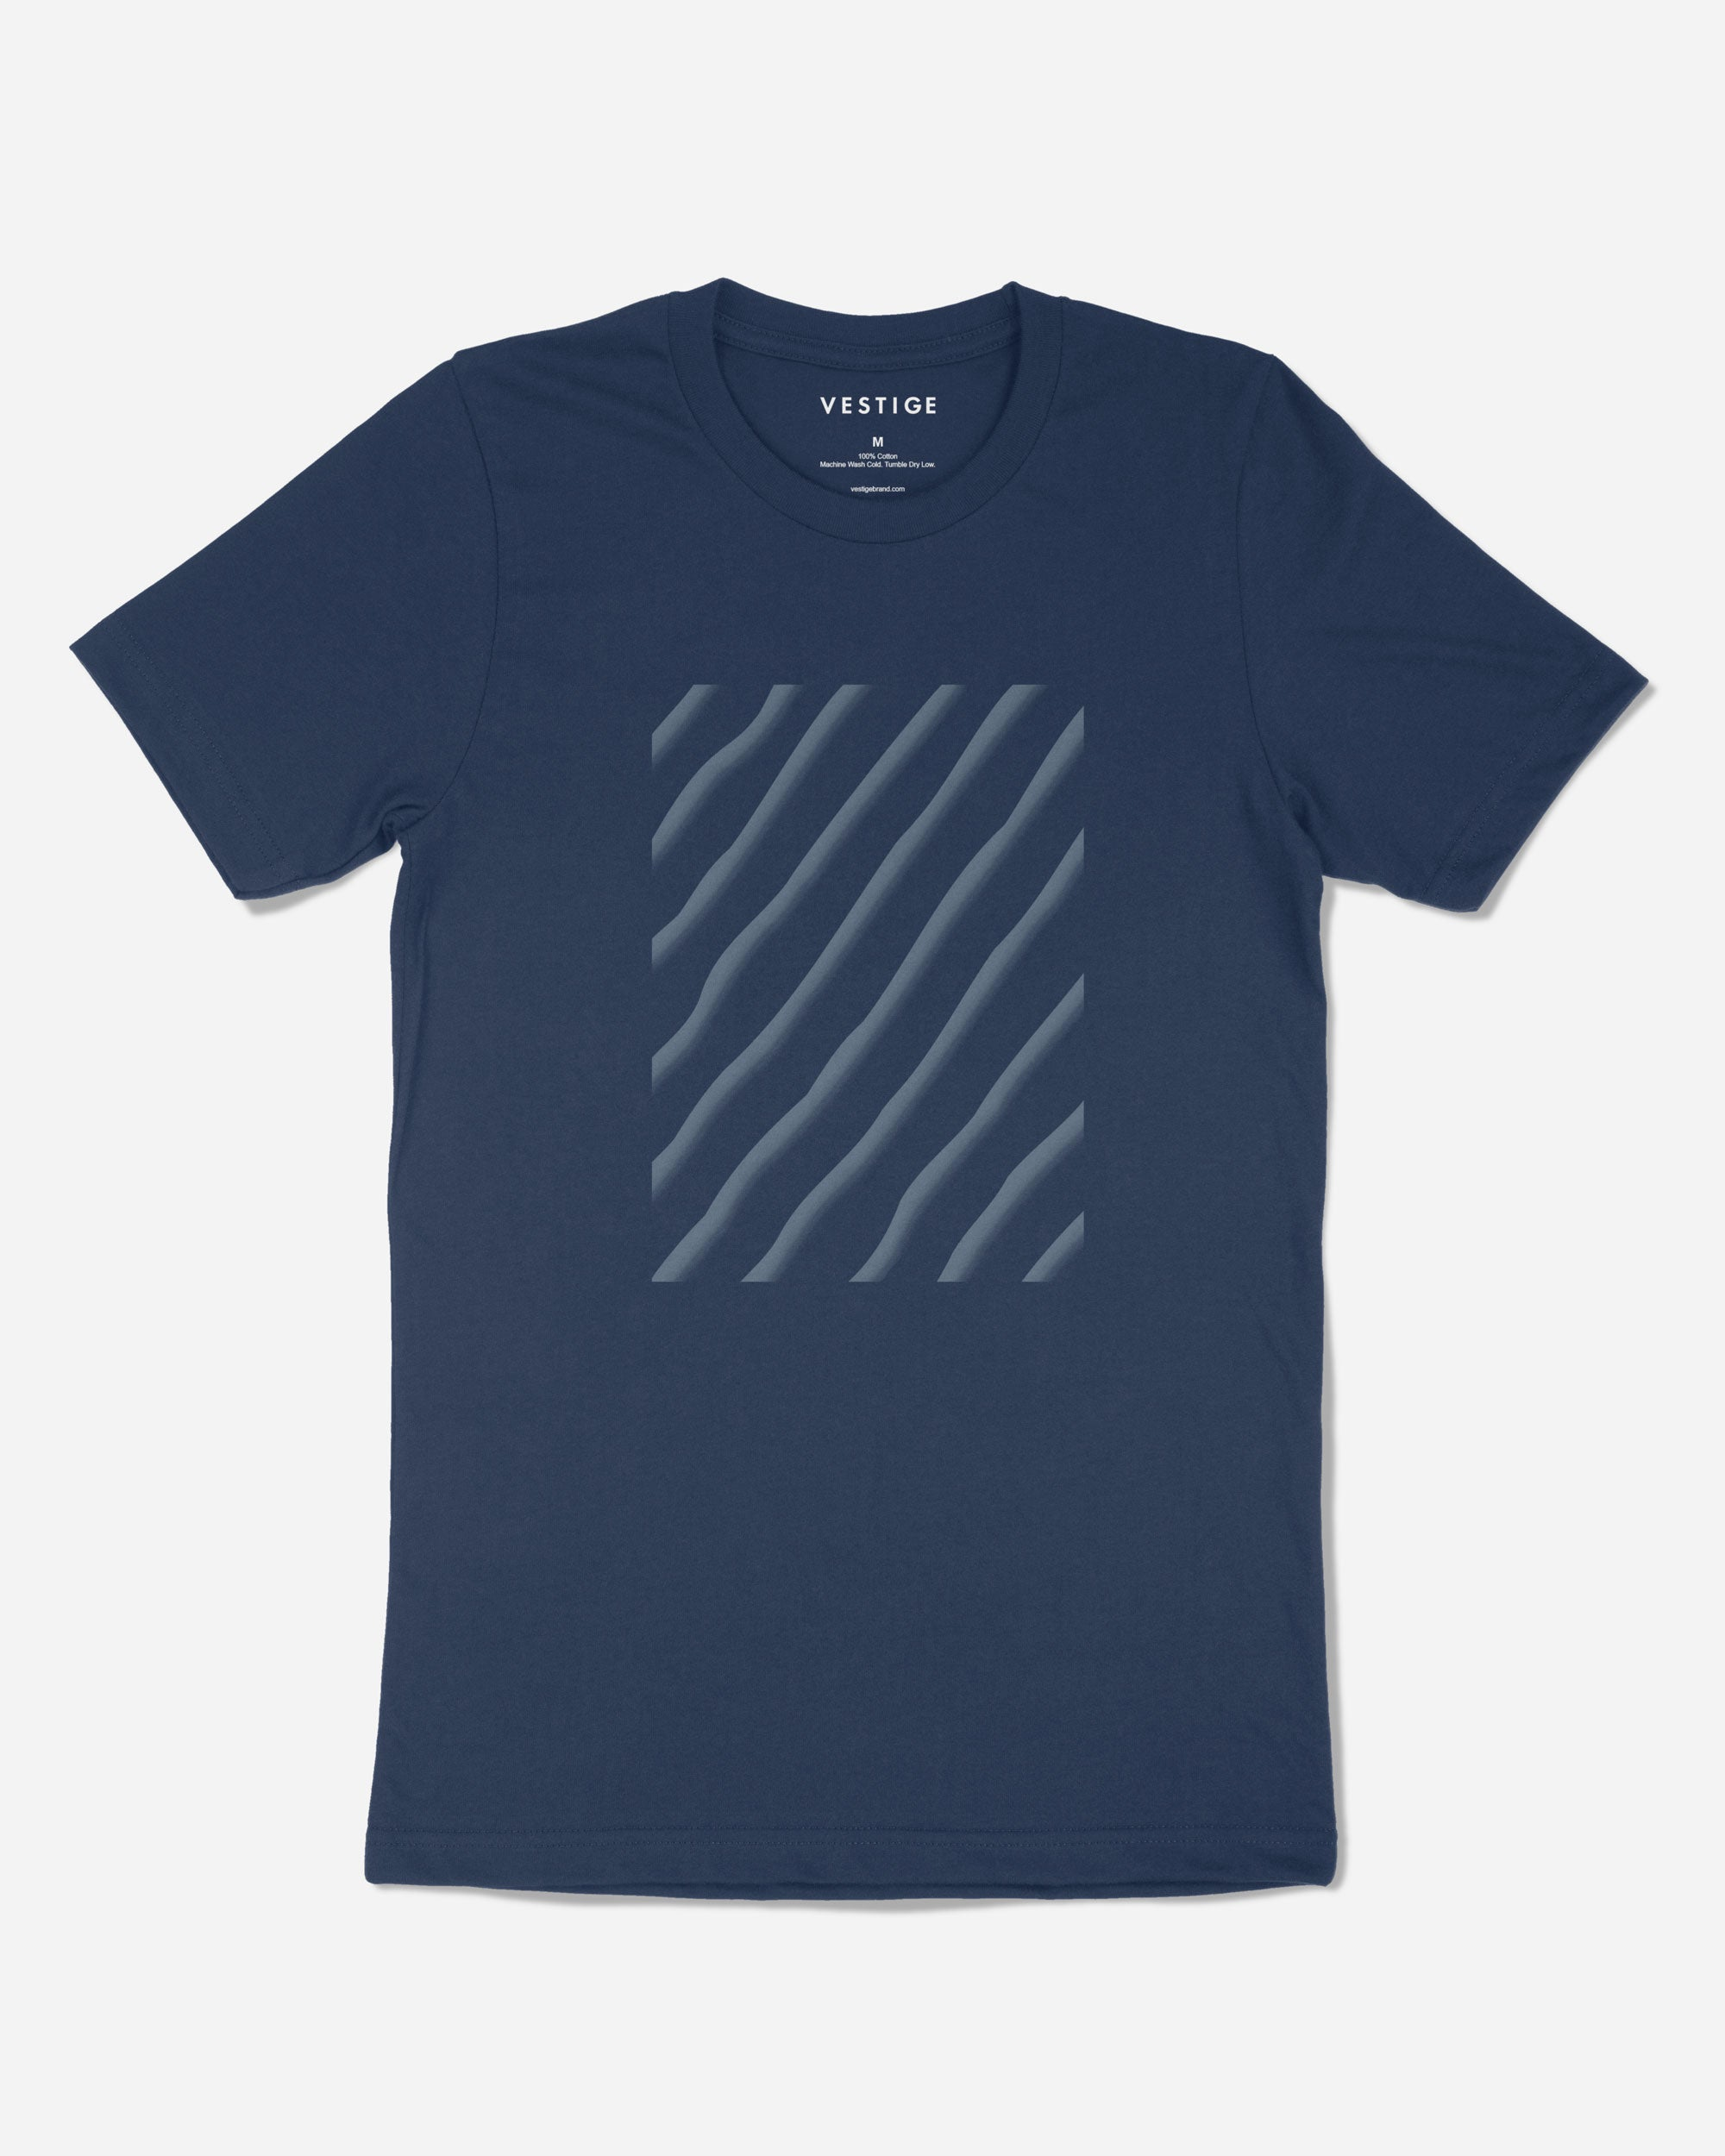 Sand Ripple T-Shirt, Blue